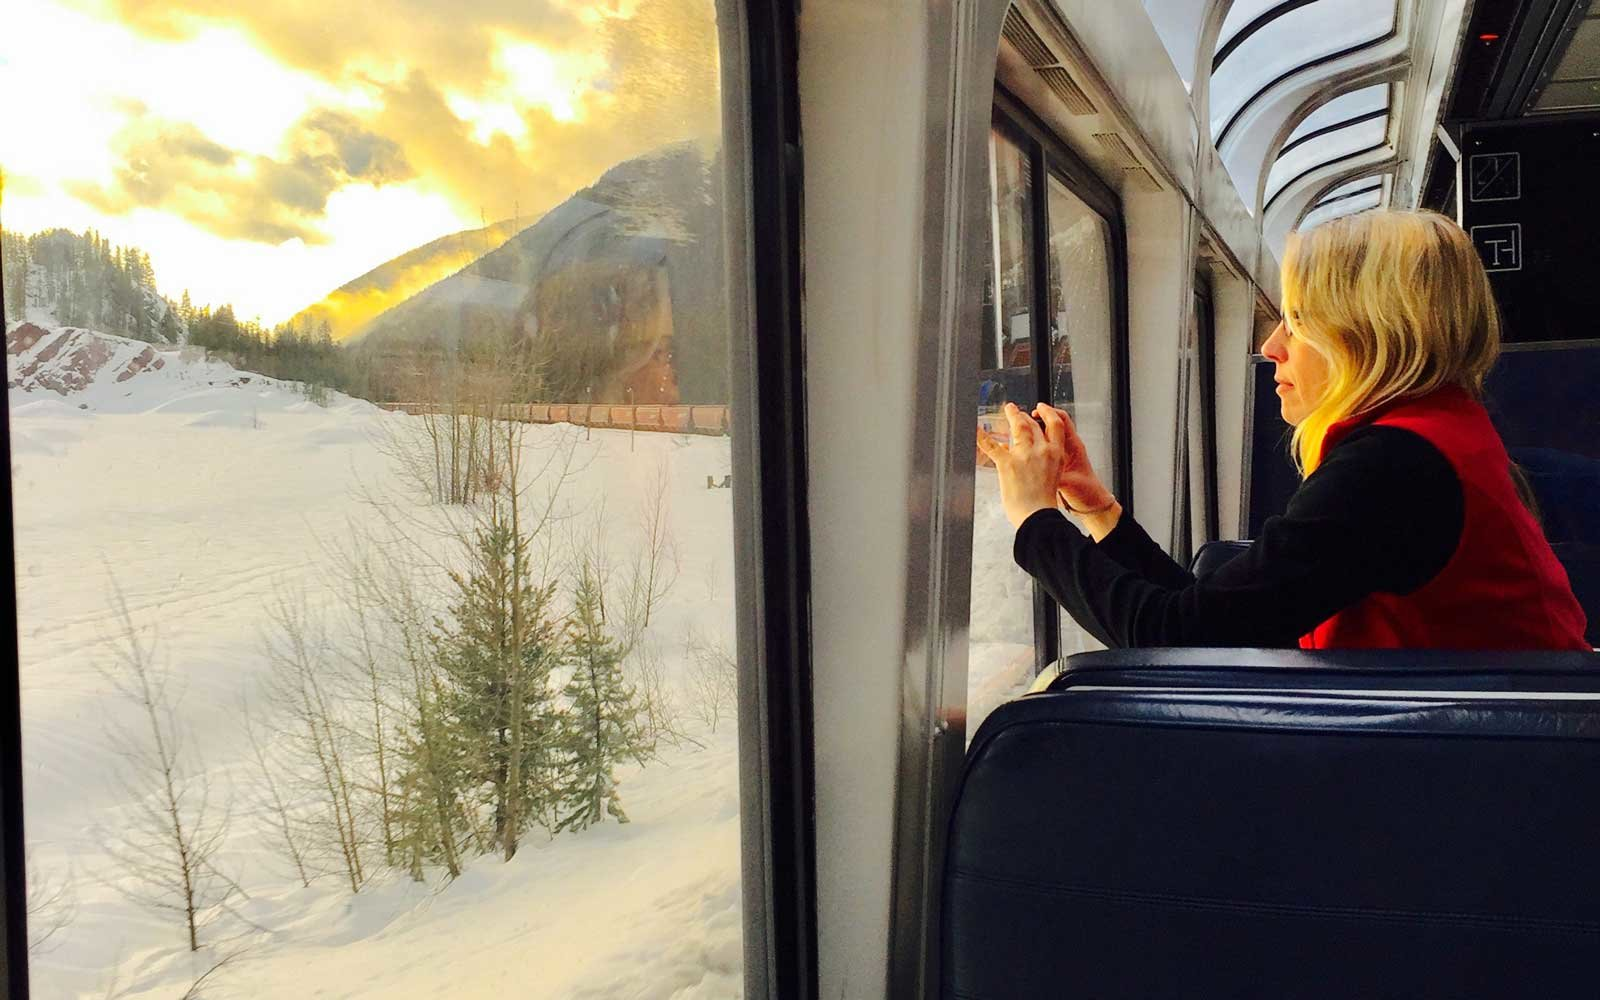 Passenger taking photo from Amtrak Empire Builder train of Glacier National Park